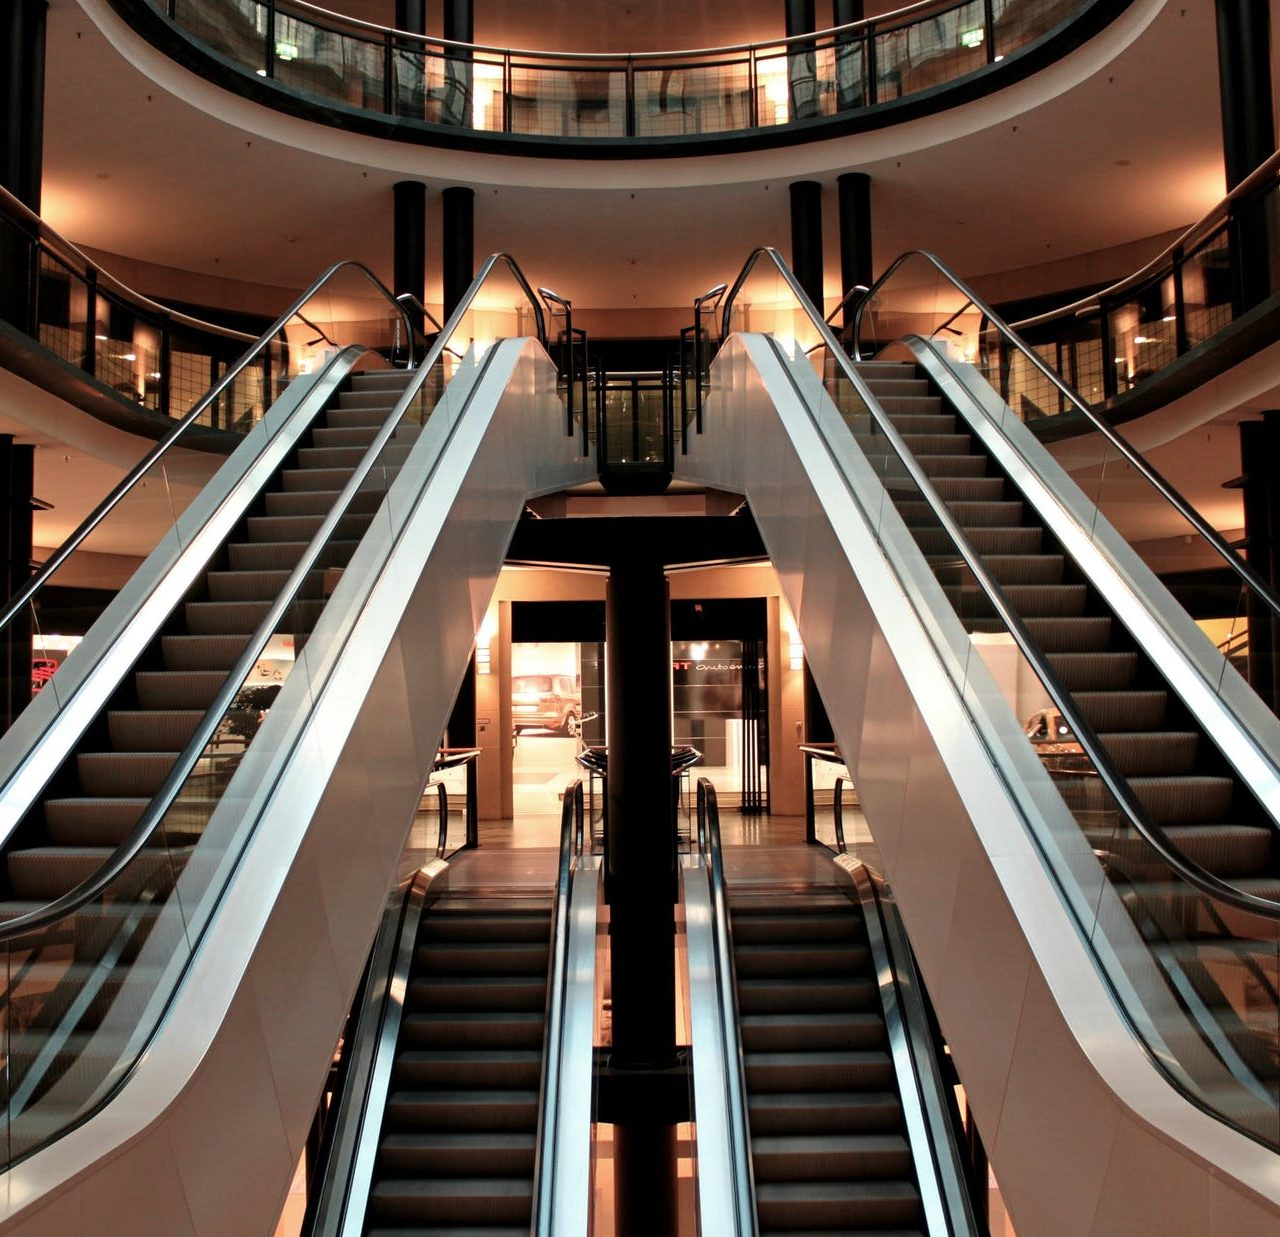 https://aircurtain.co/wp-content/uploads/2020/12/escalator-stairs-metal-segments-architecture-54581-1280x1237.jpeg